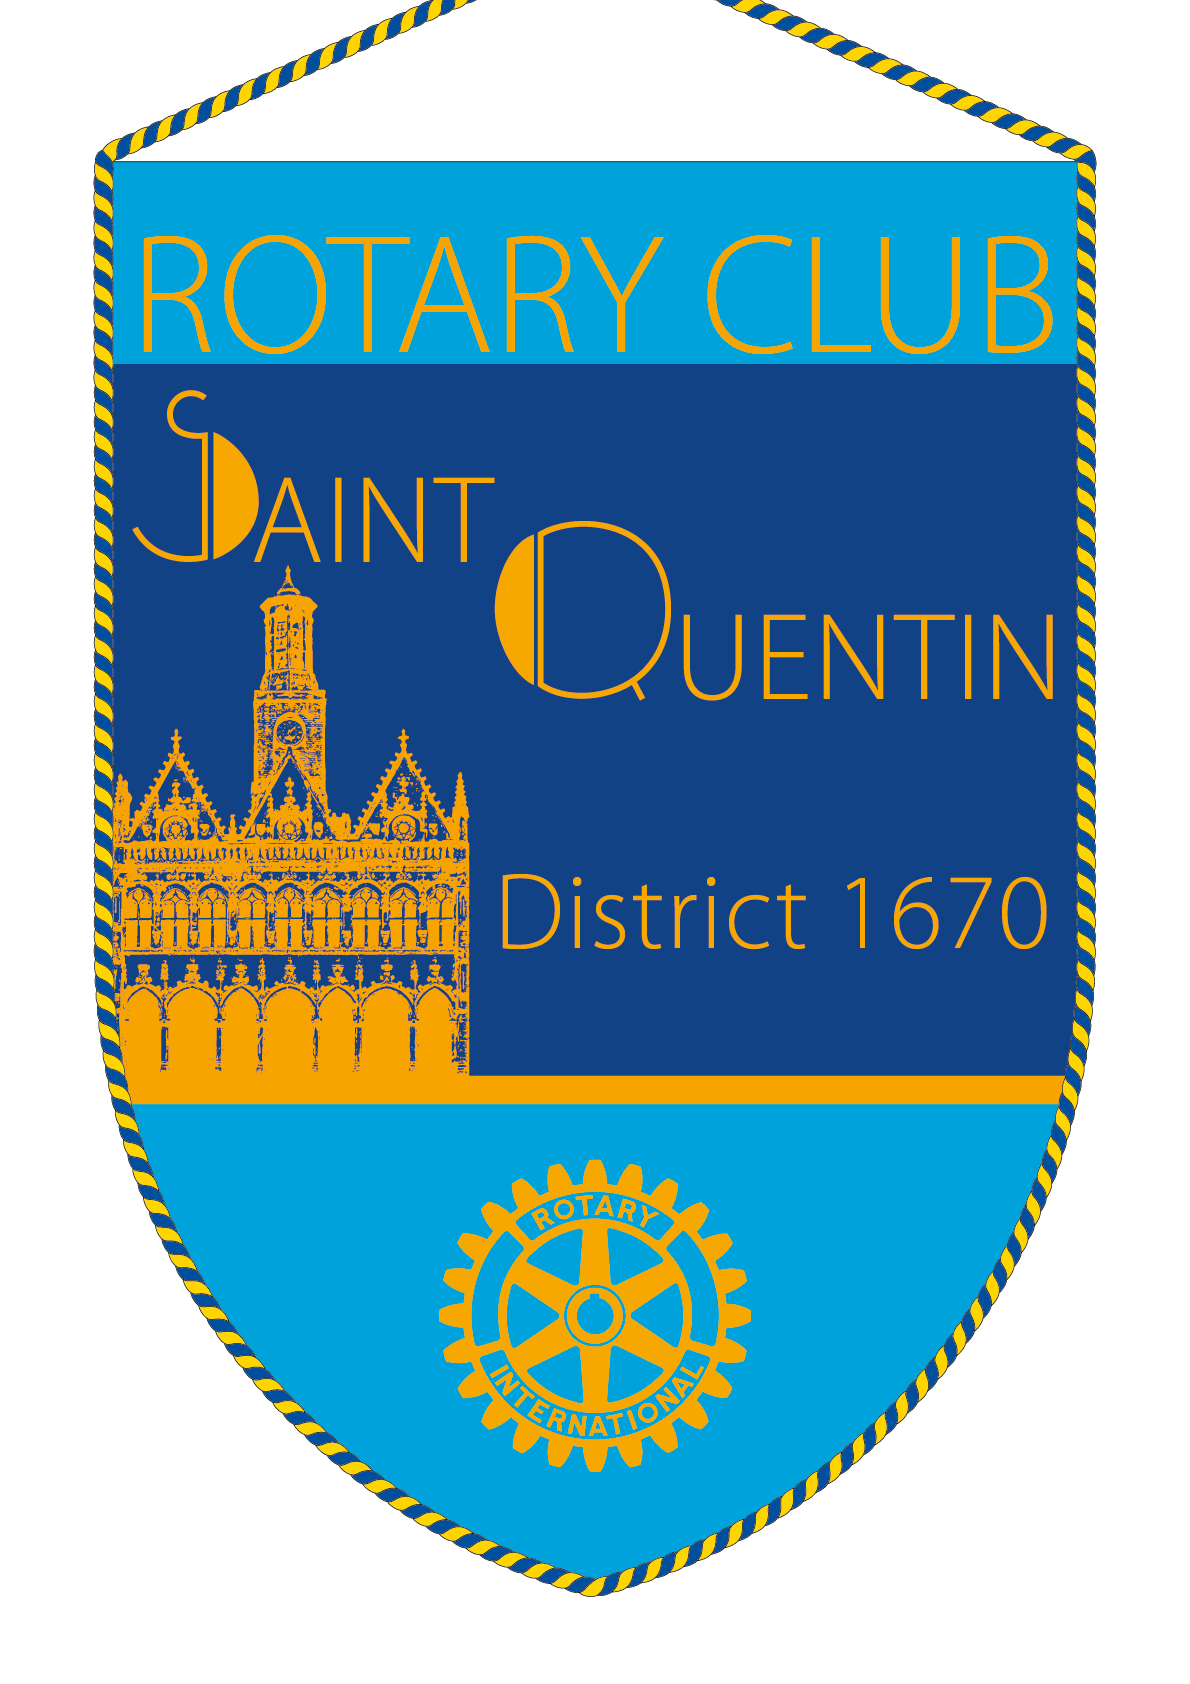 FANION ROTARY CLUB SAINT QUENTIN